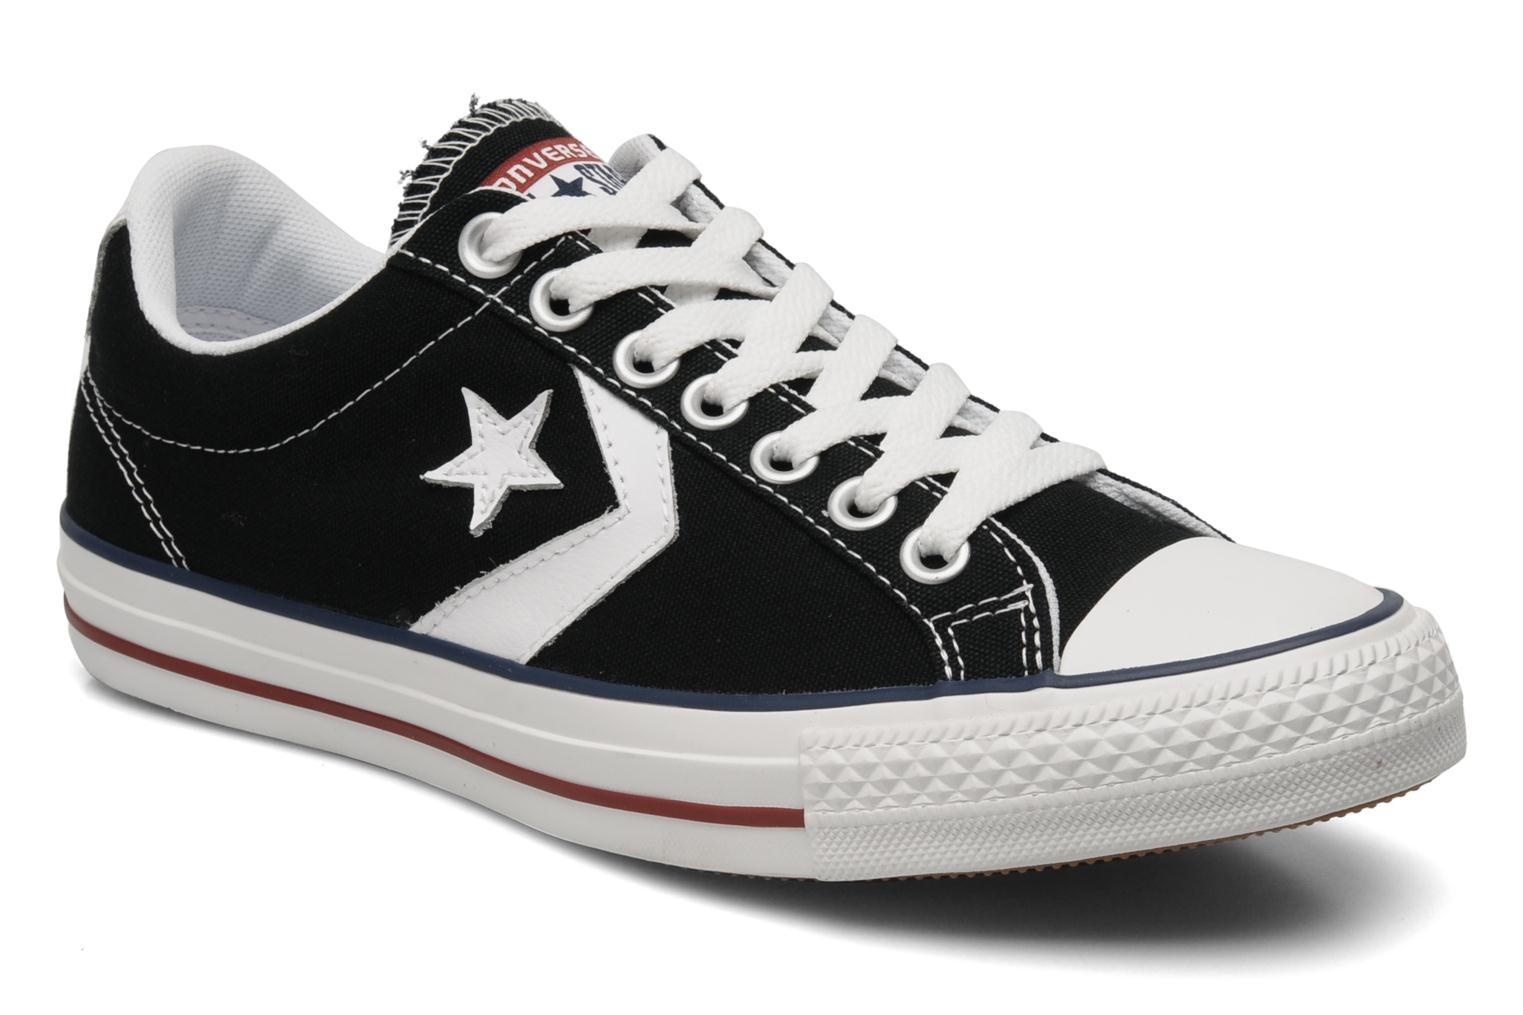 Star player ev canvas ox m by converse.